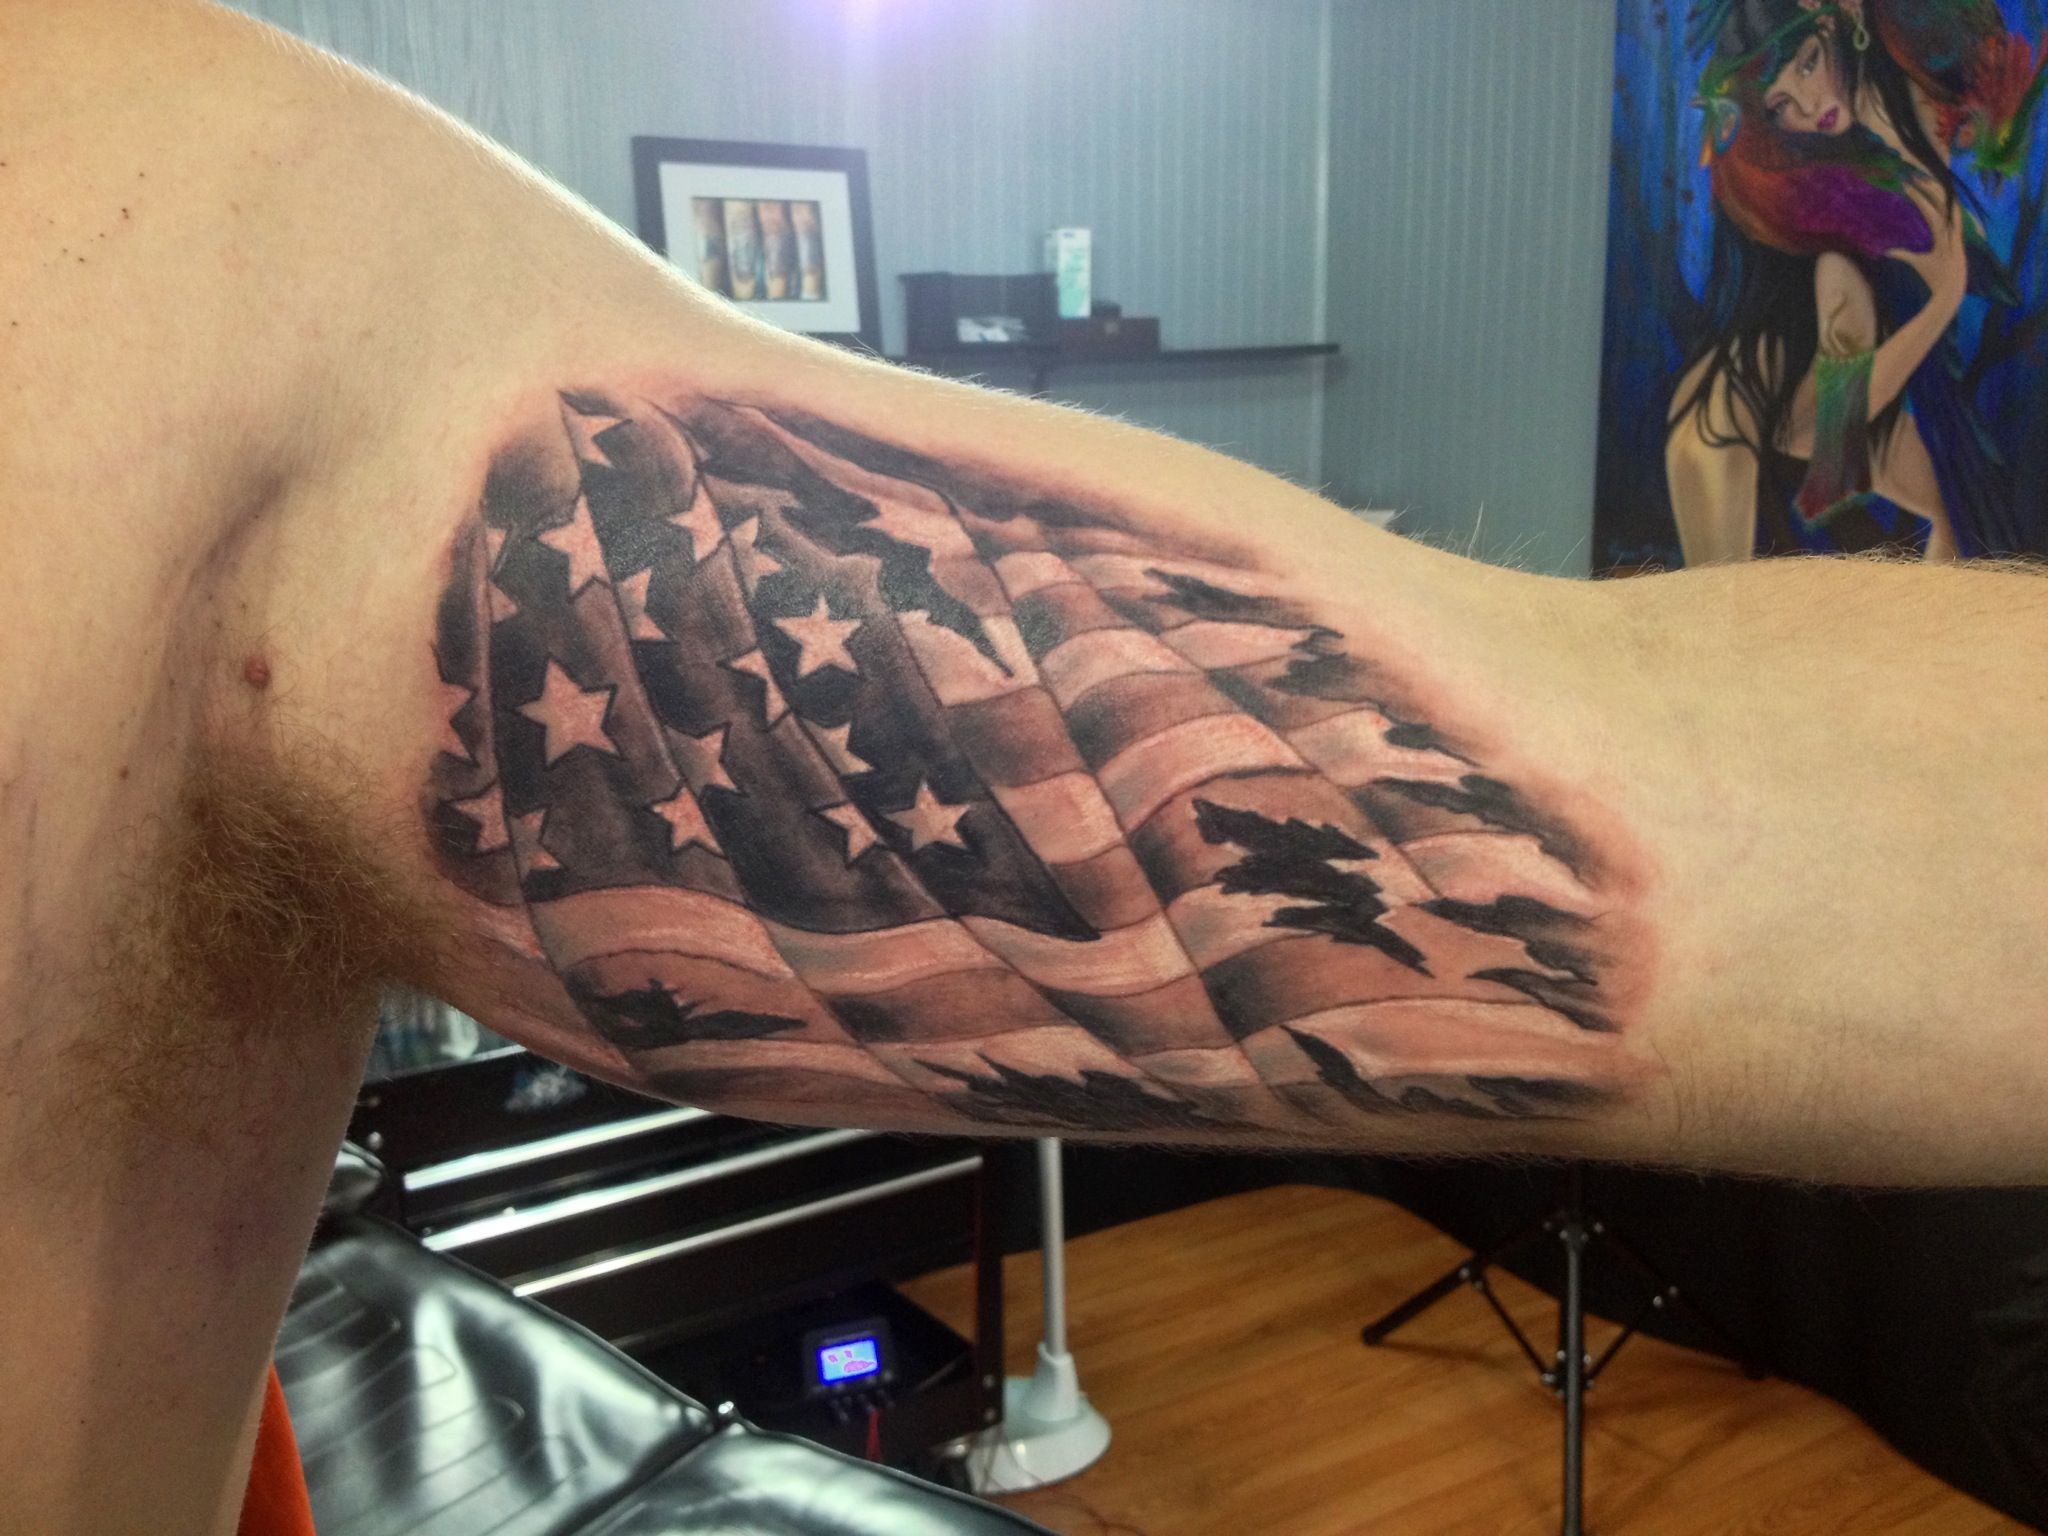 American Flag Tattoo Excluding Hard Lines From Folds Flag Tattoo American Flag Tattoo Tattoos